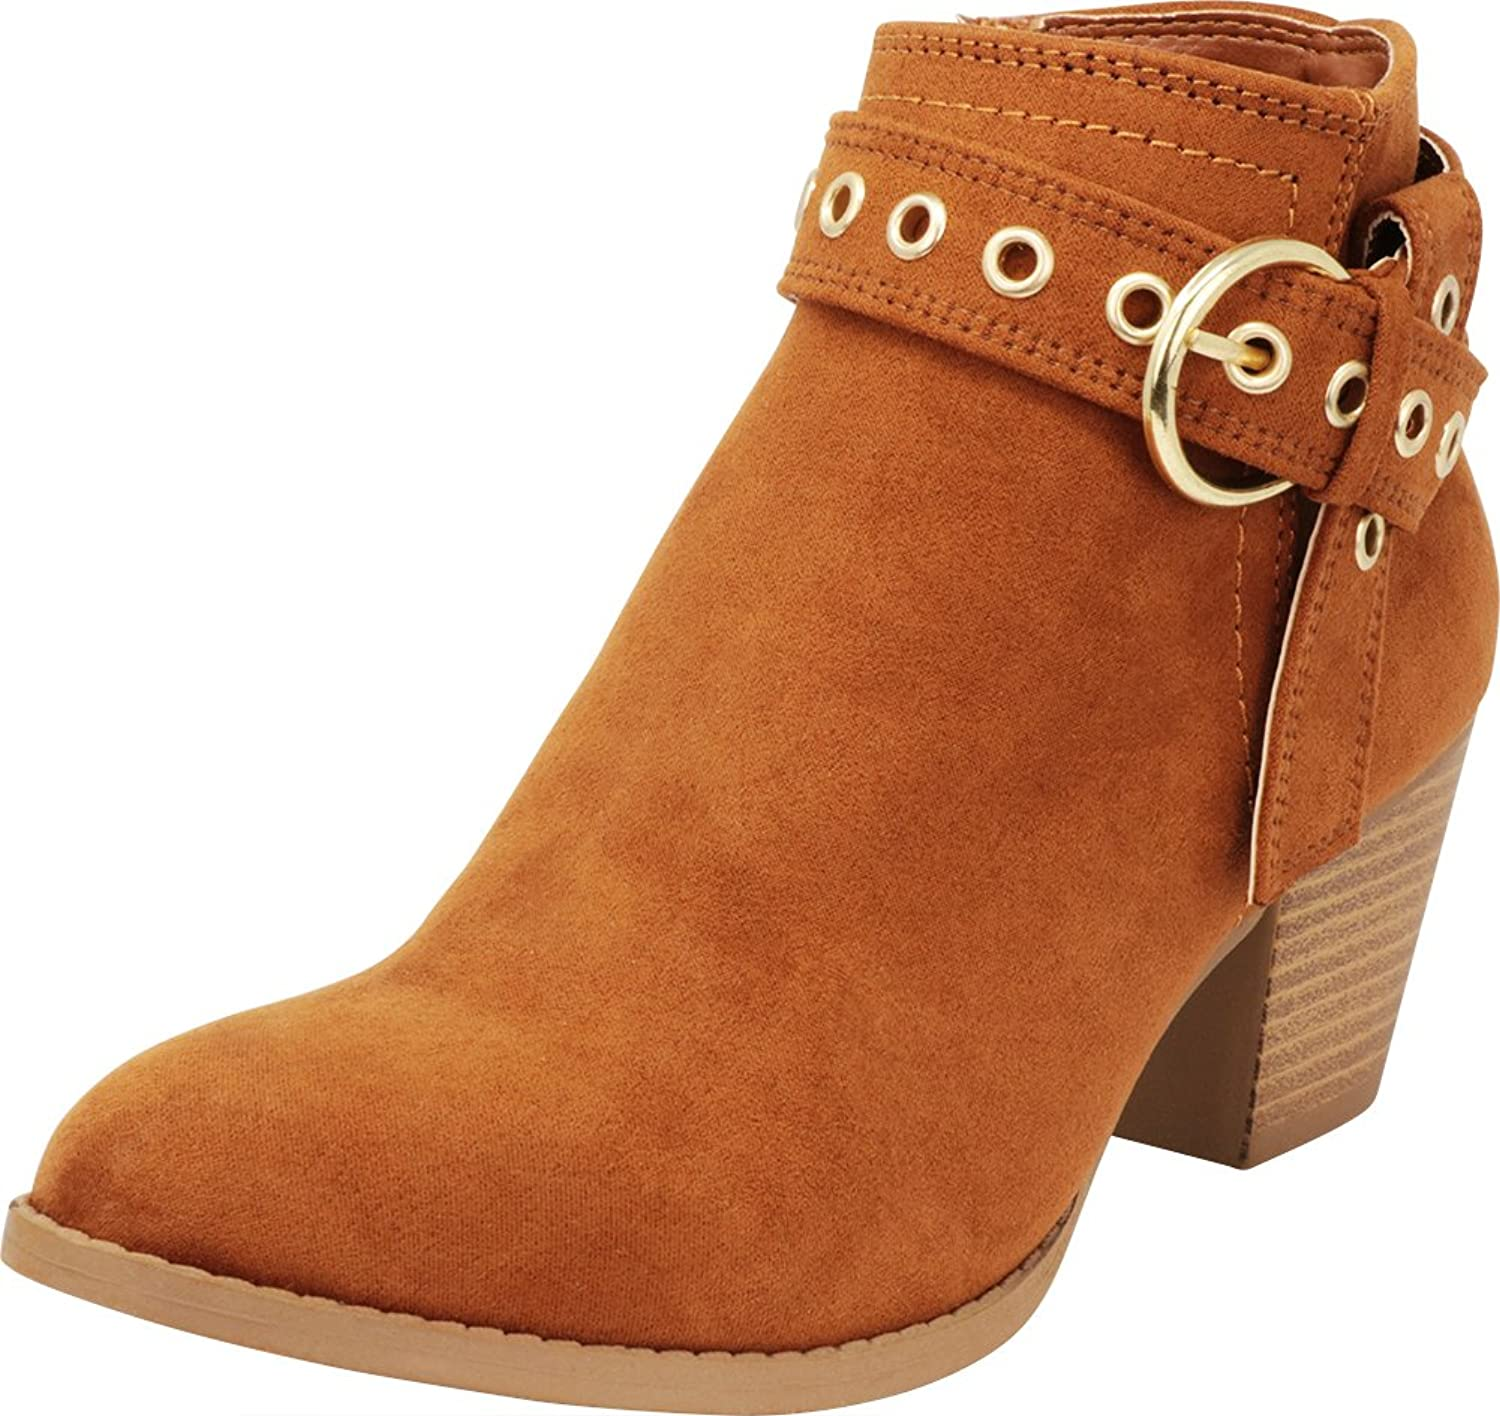 Cambridge Select Women's Closed Toe Credver Strap gold Eyelet Chunky Stacked Block Heel Ankle Bootie